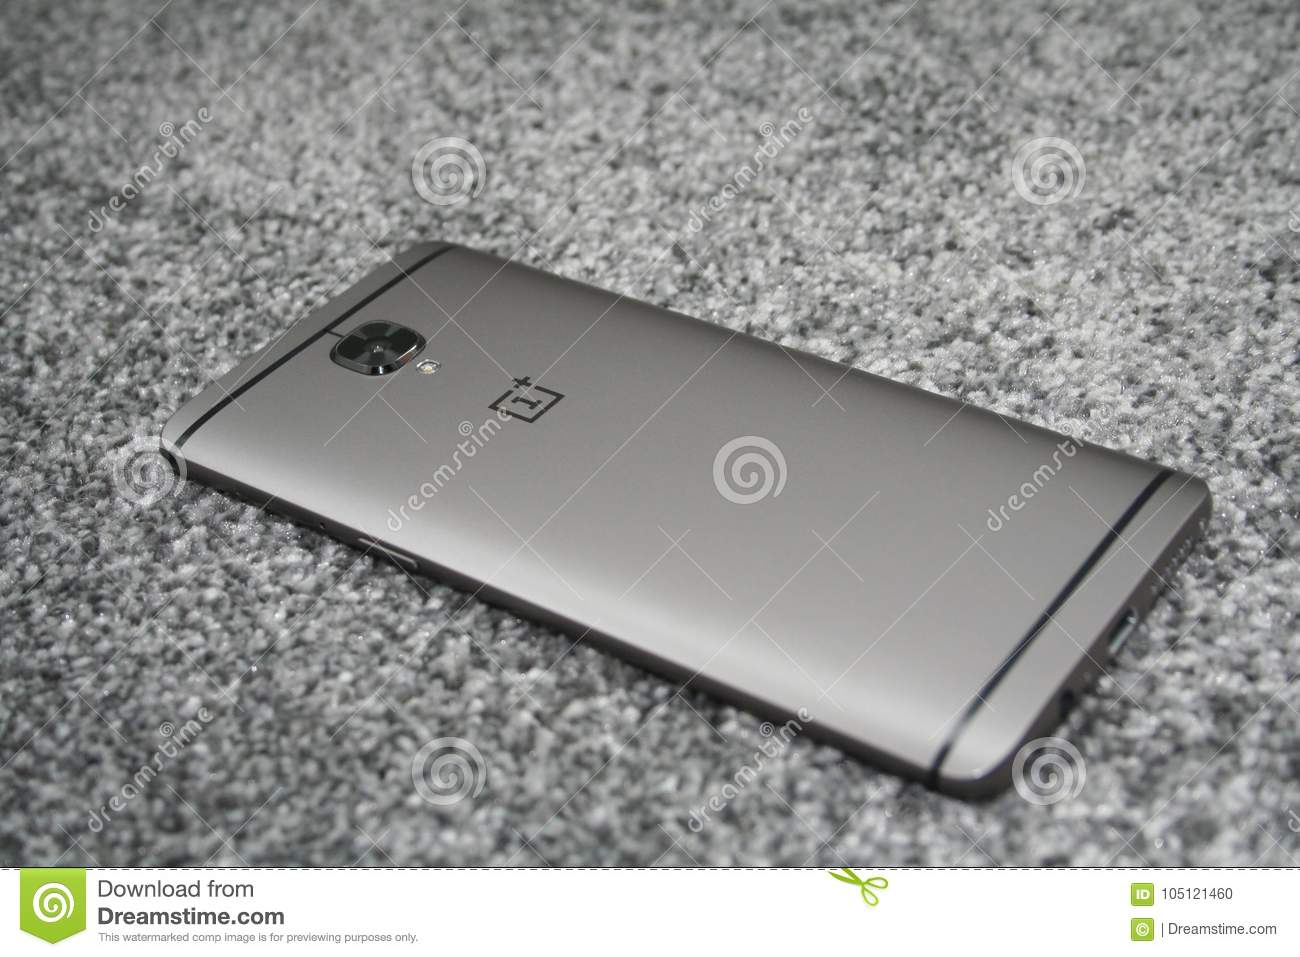 Gunmetal Oneplus 3T editorial image  Image of phone - 105121460